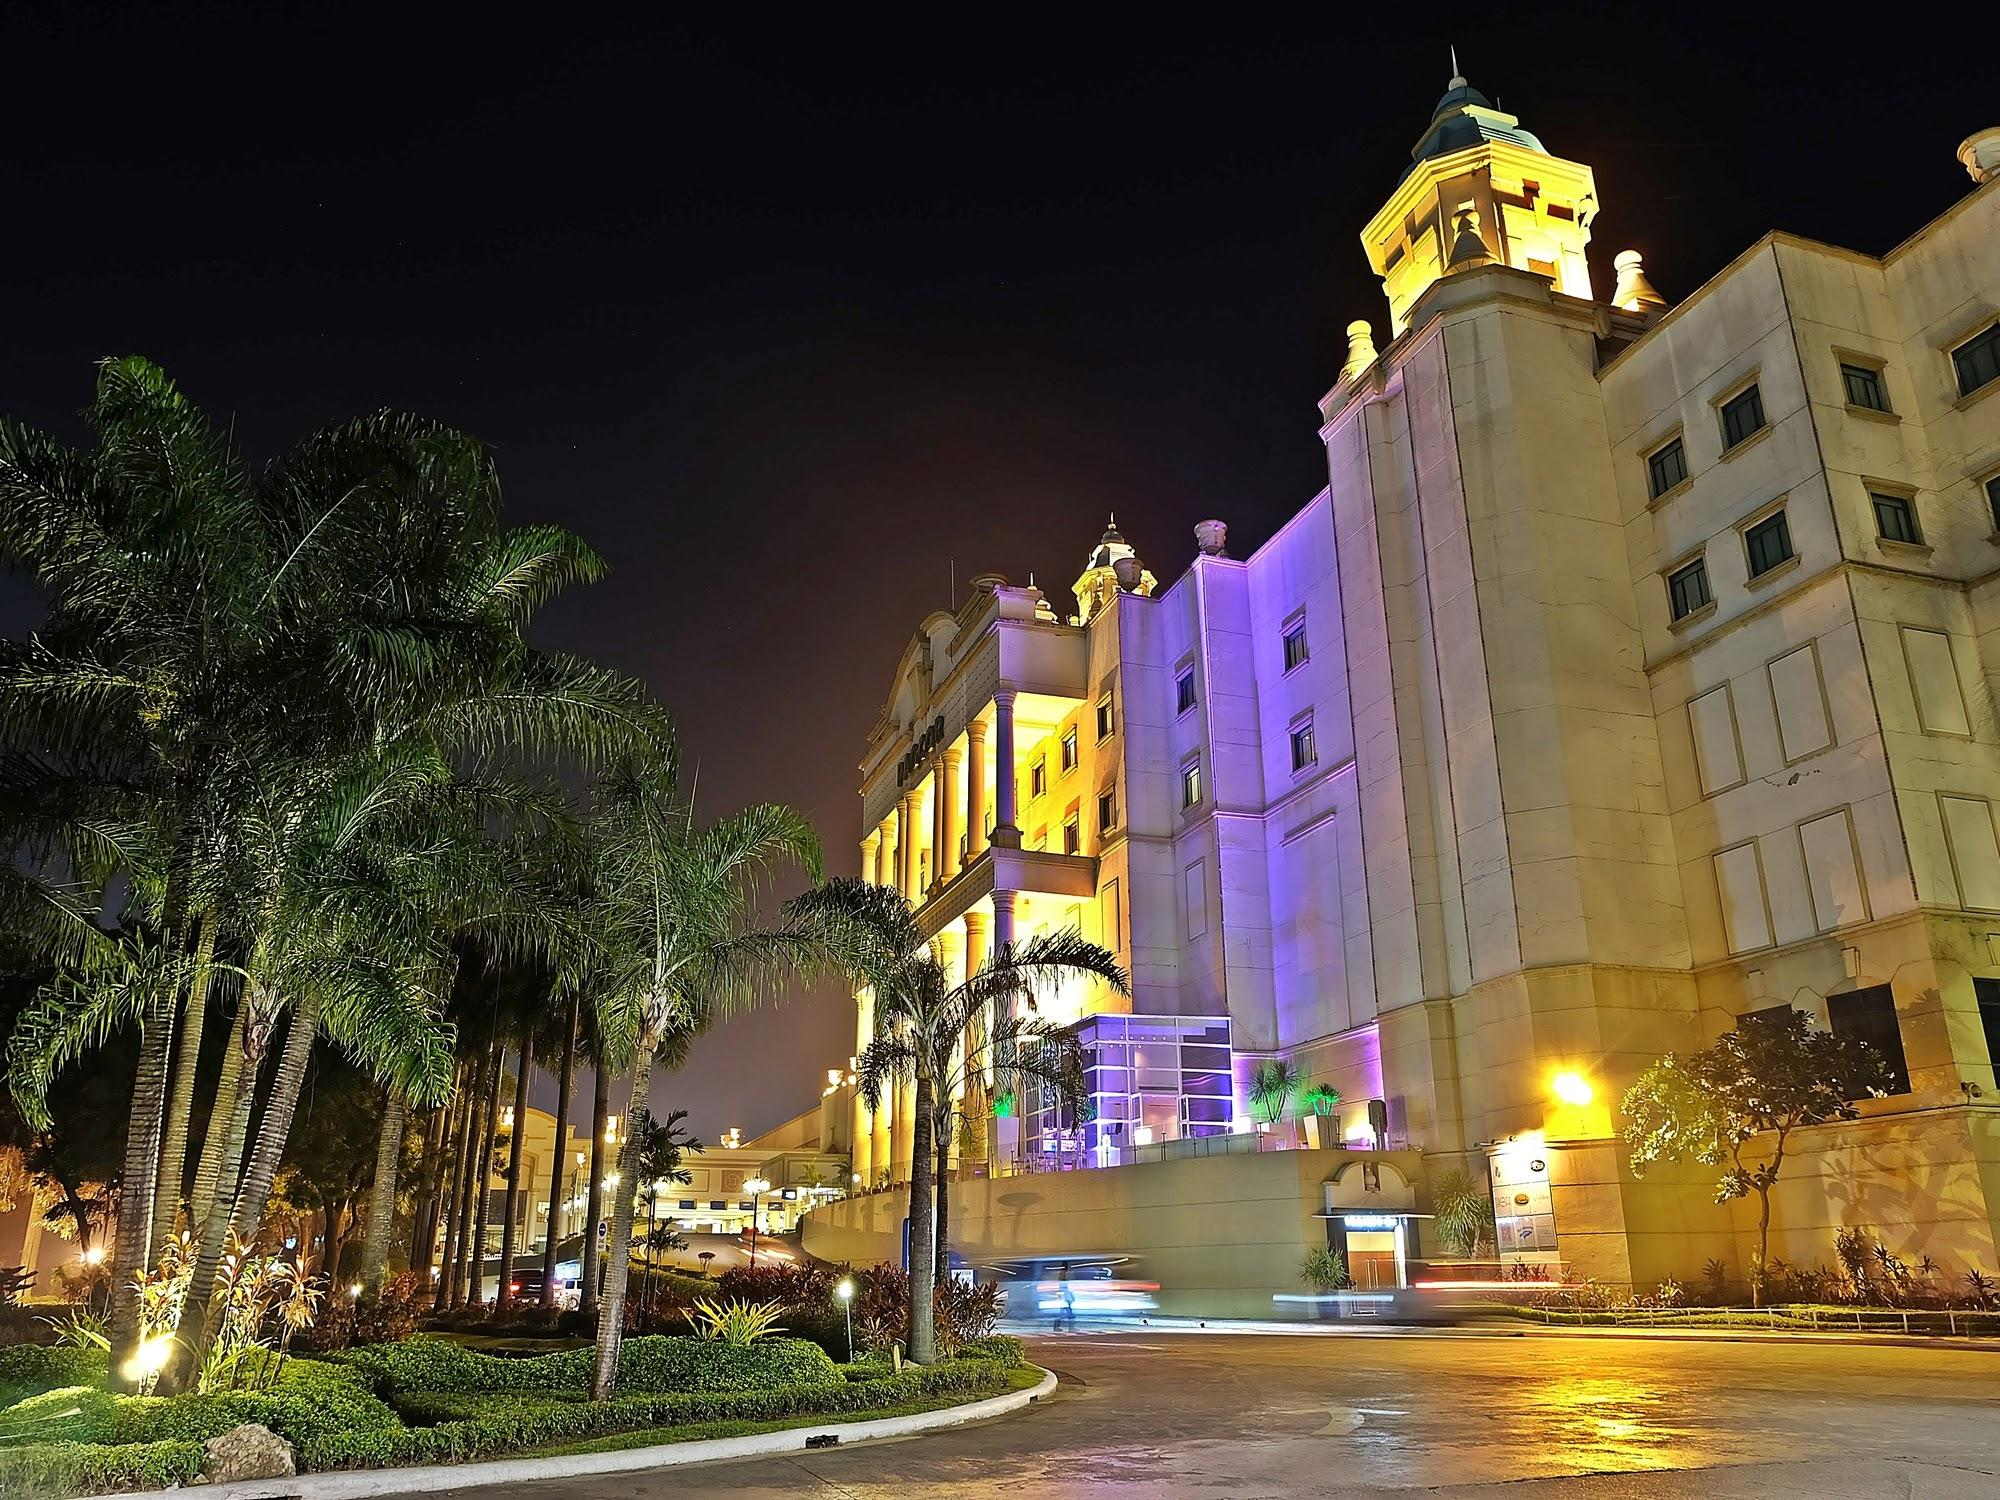 Waterfront Cebu City Hotel and Casino Sebu - Viesnīcas ārpuse